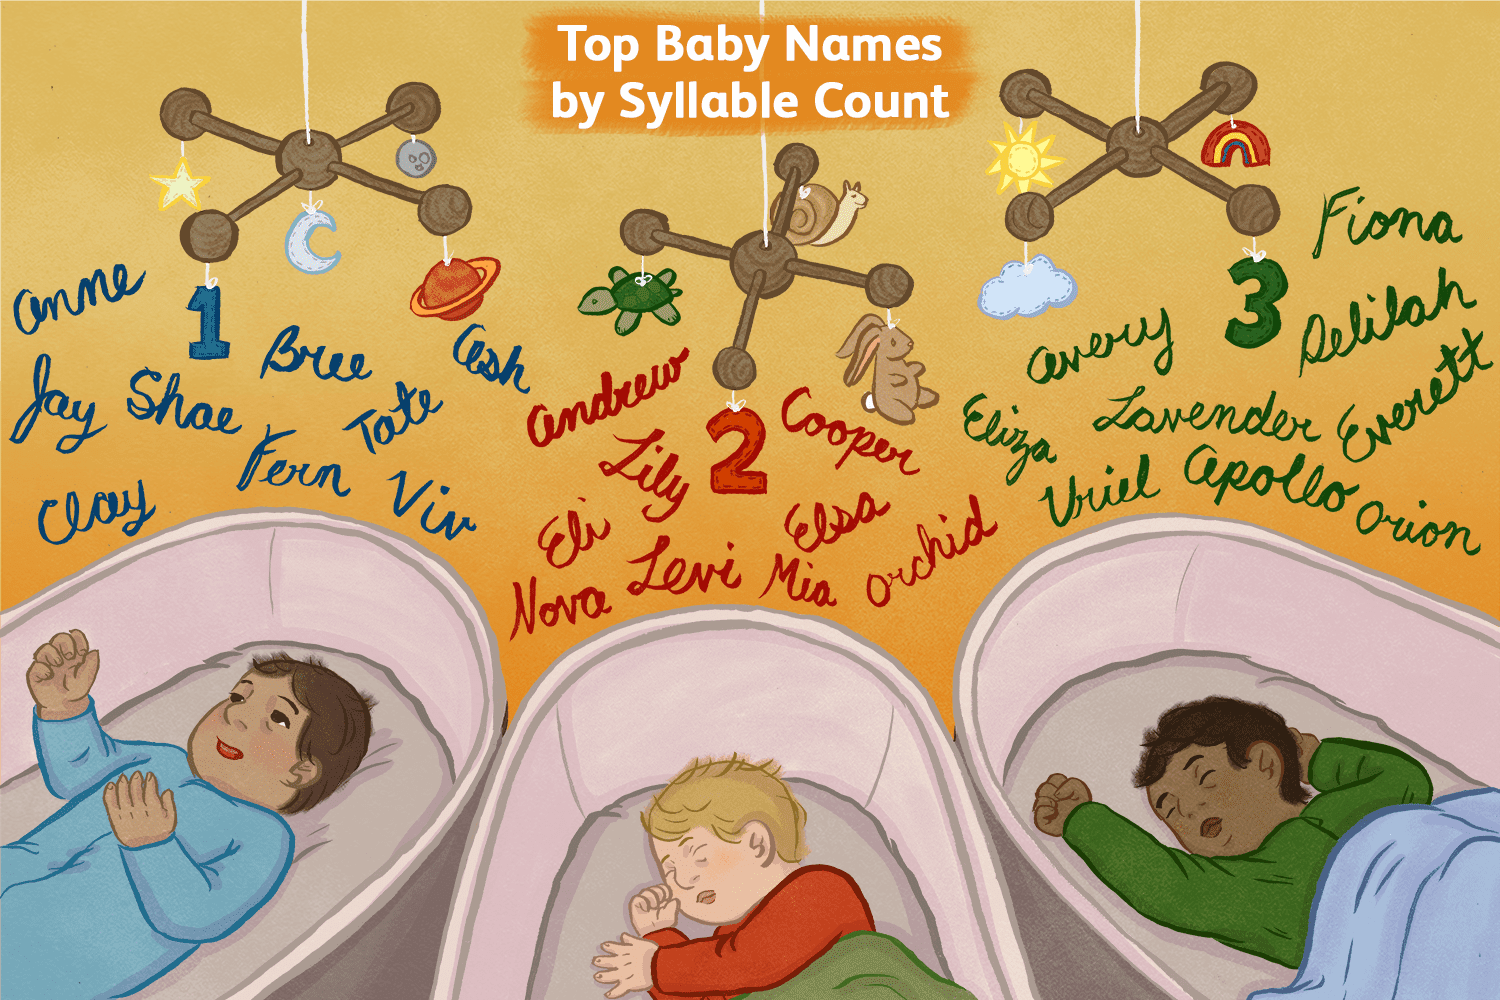 300 Popular Baby Names by Syllable Count.